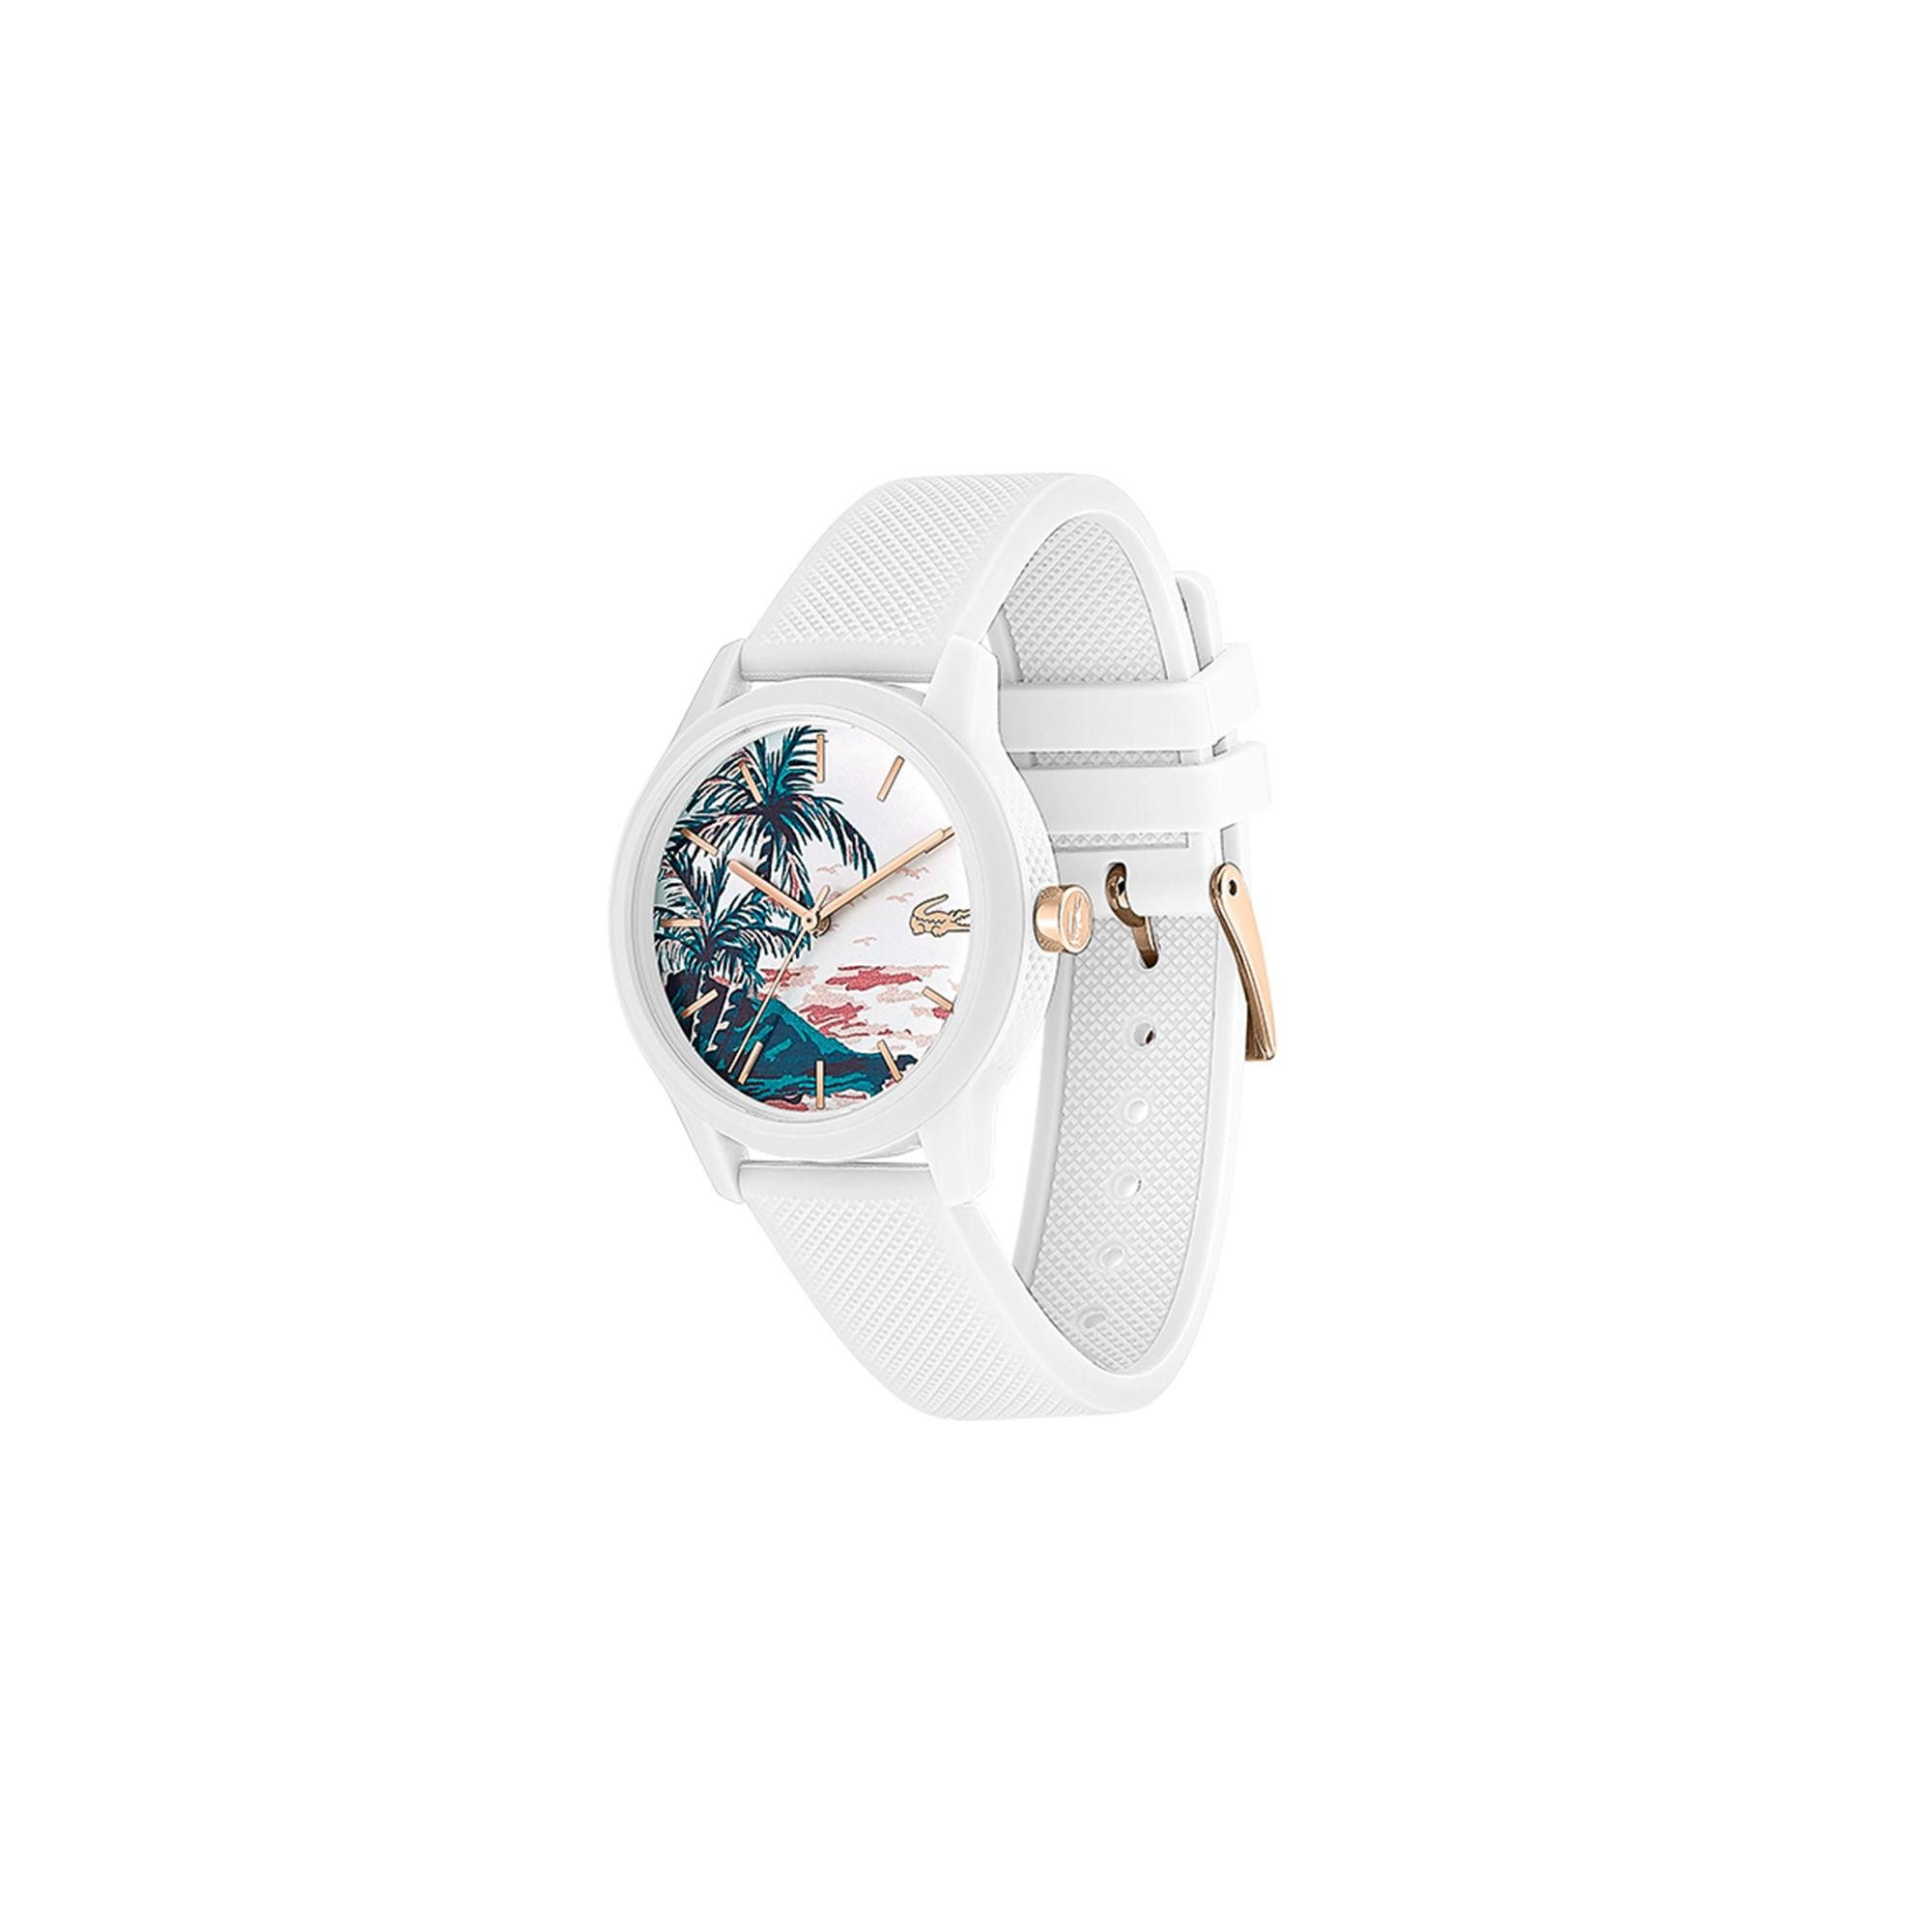 c2a9bb355 Lacoste - White Gents .12.12 Hawaii Watch With Green Silicone With Petit  Piqué Strap -. View fullscreen